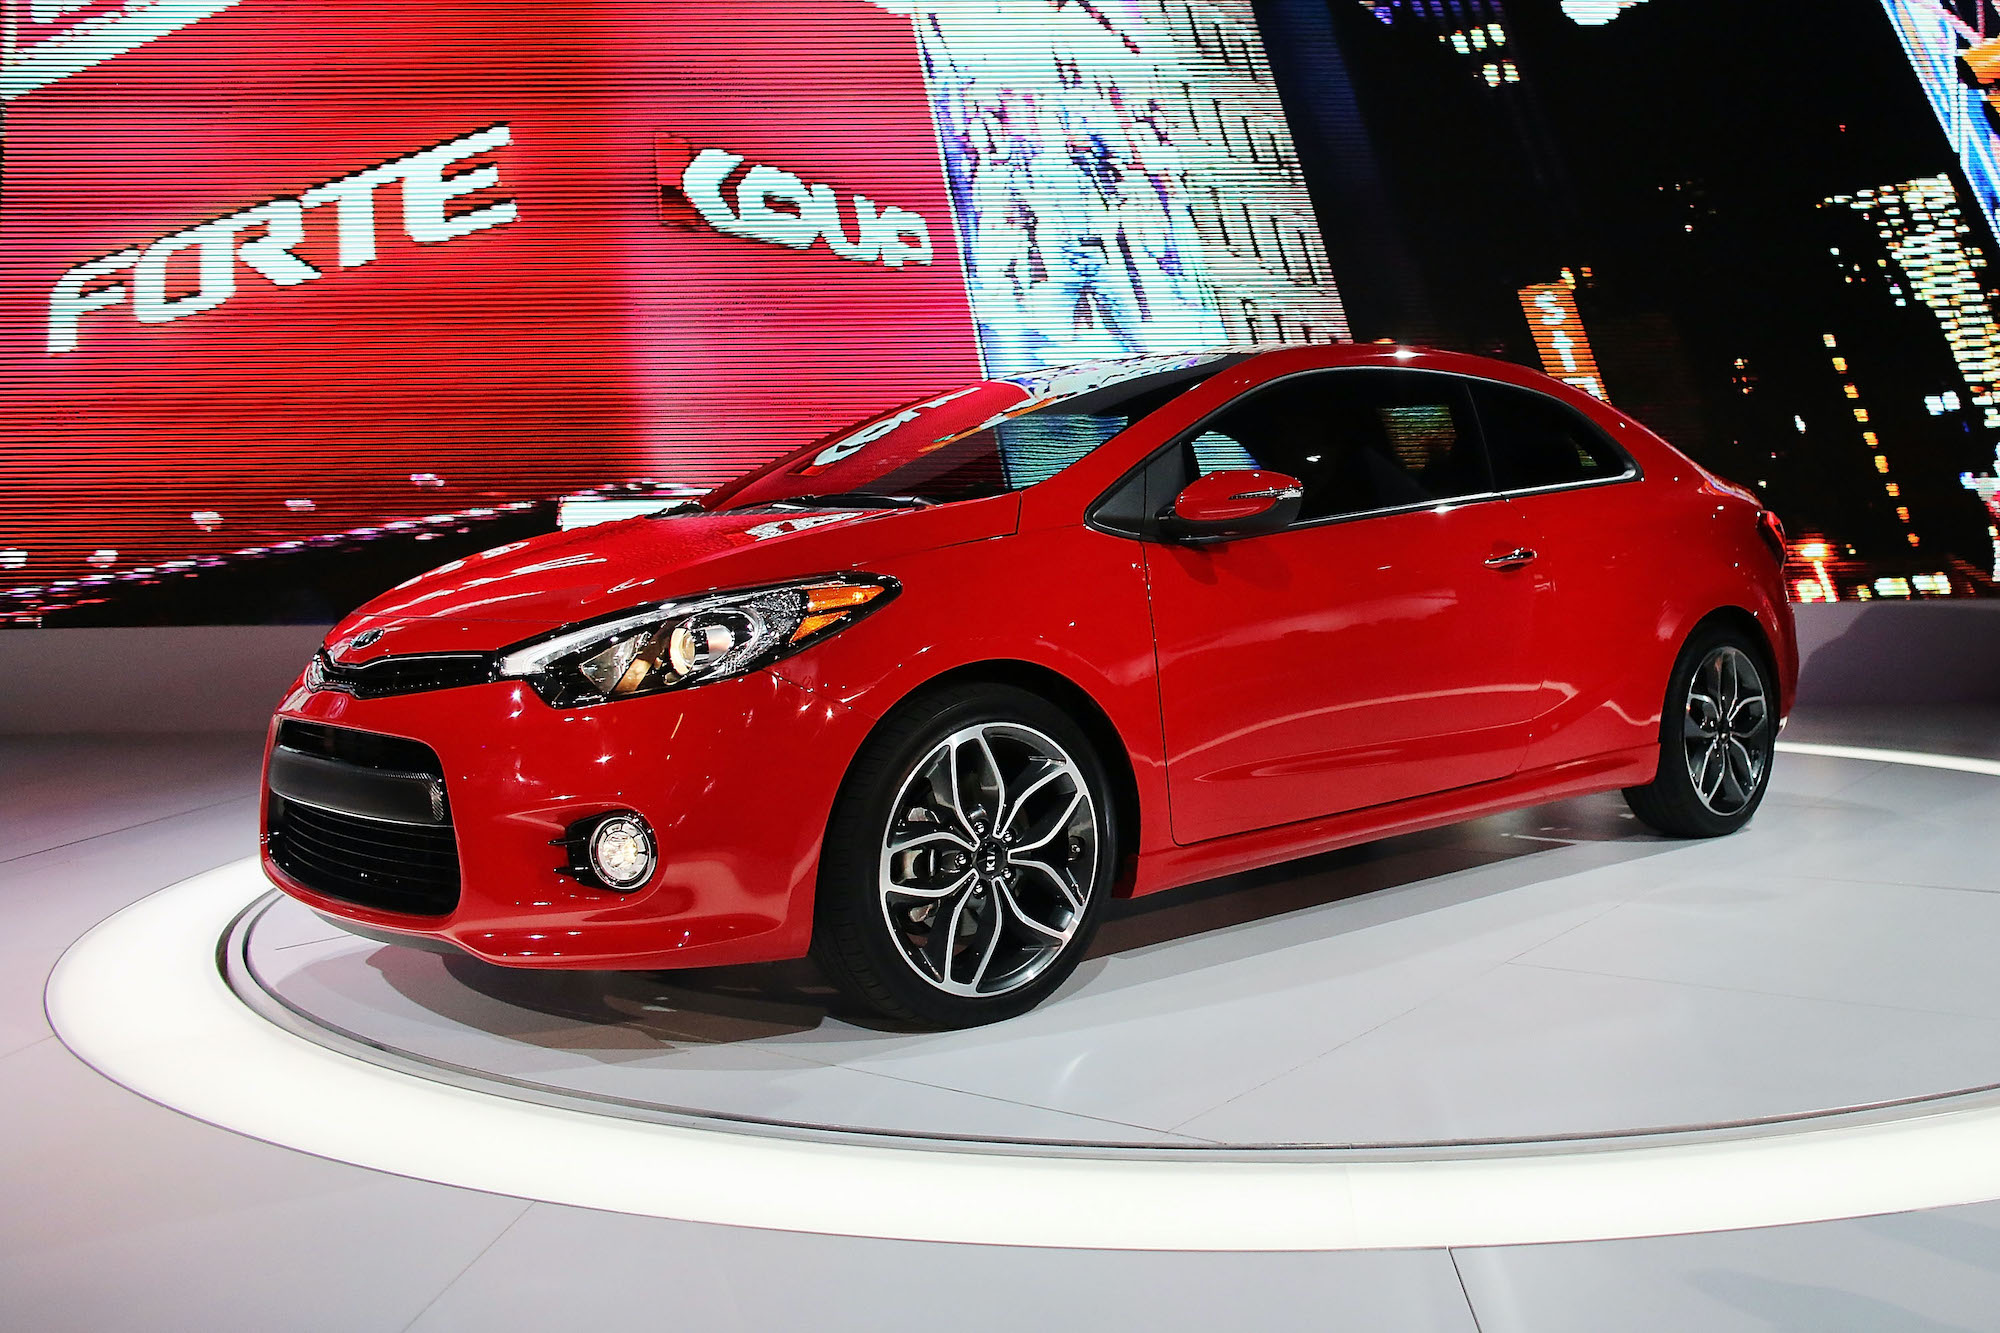 The 2015 Kia Forte Is Affordable and Fuel Efficient